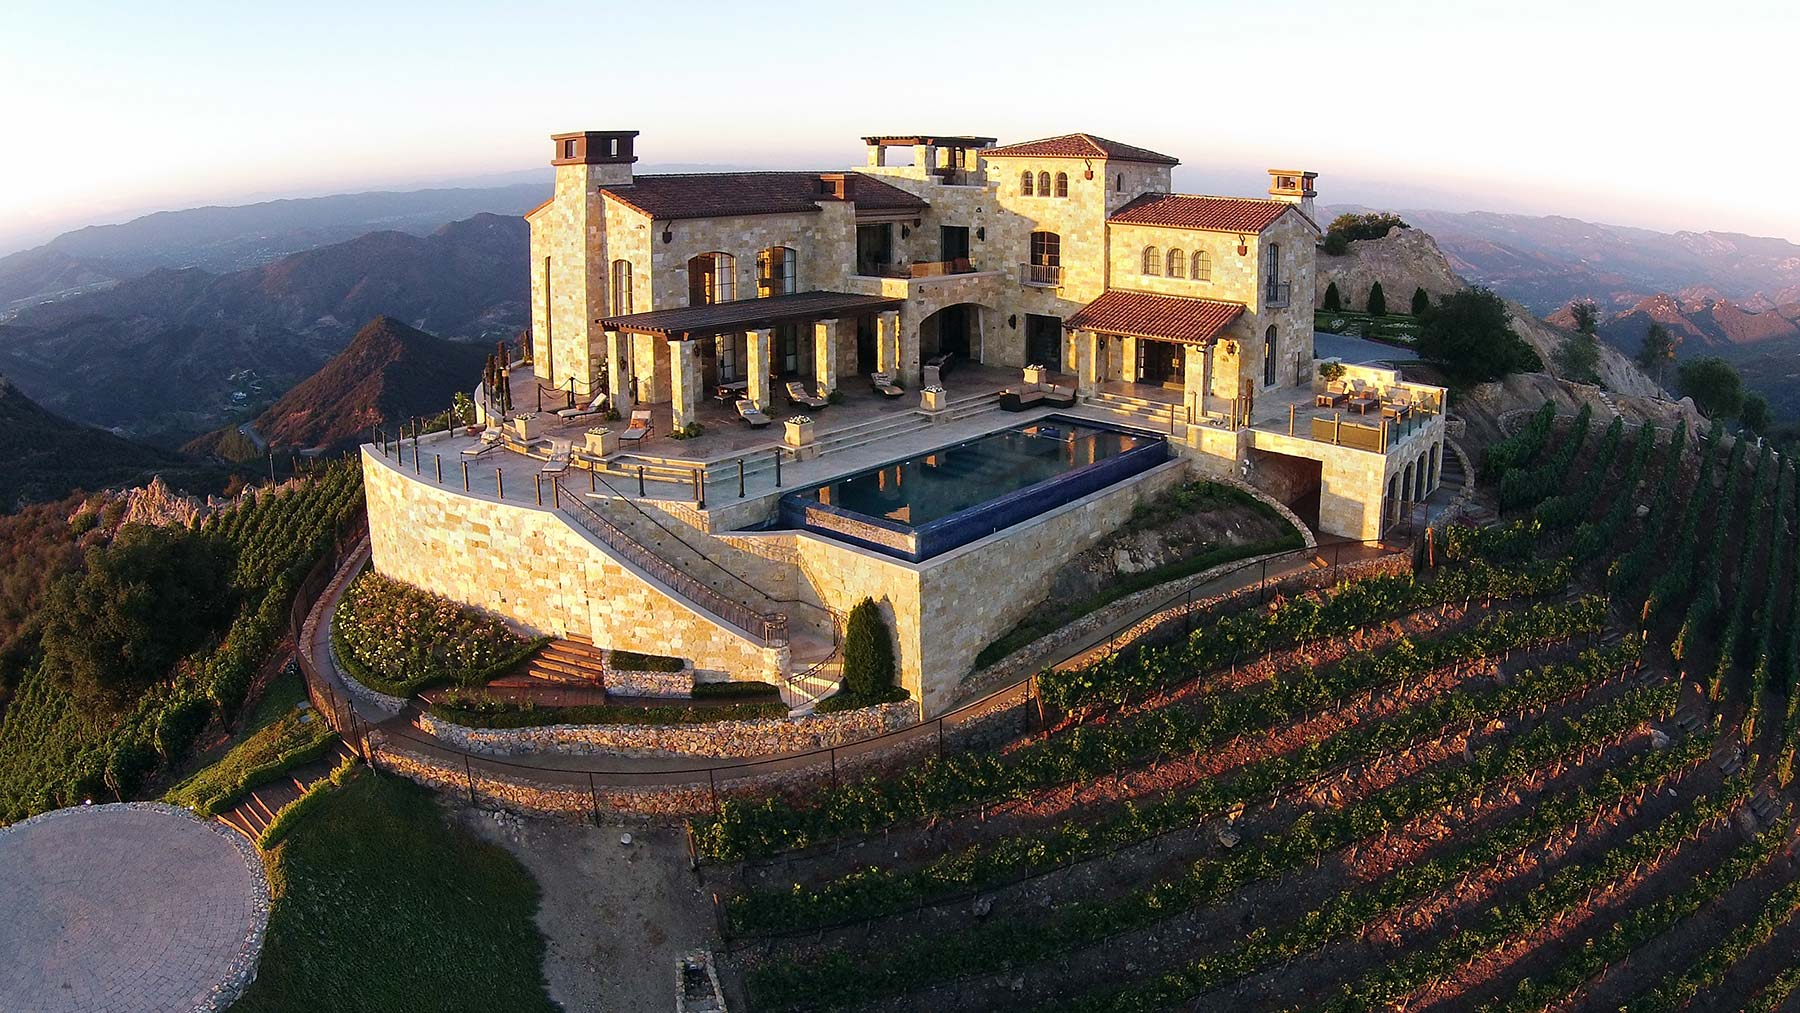 tuscan-style villa on top of mountain surrounded by vineyards